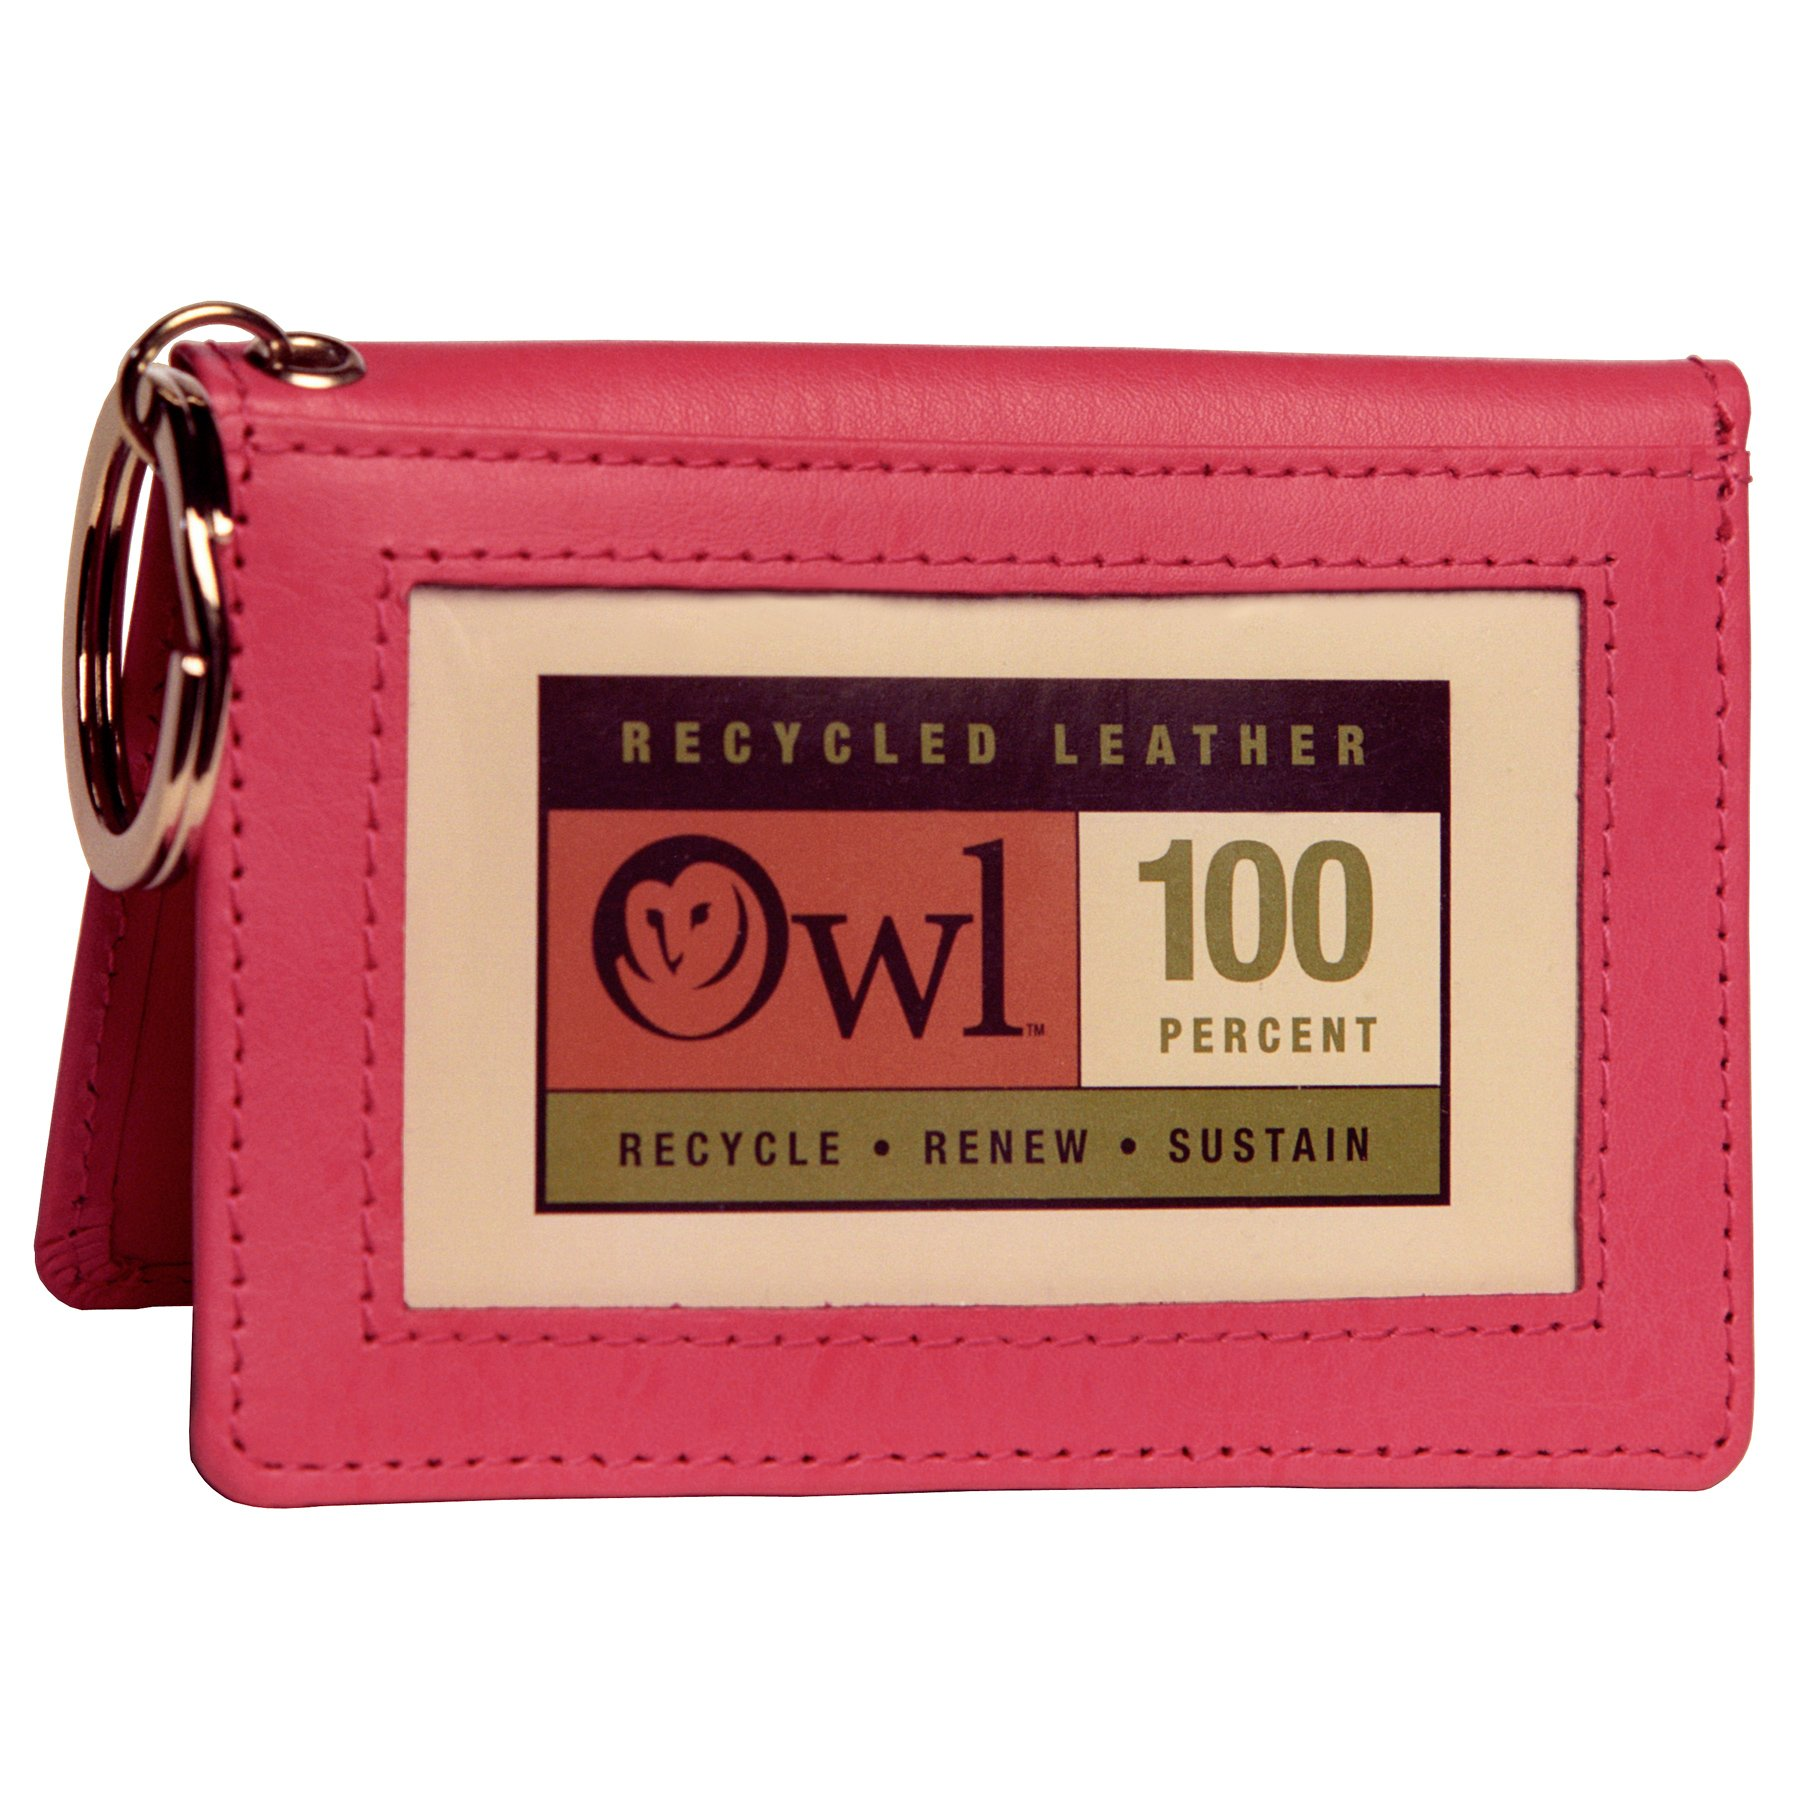 OWL Two-Fold PINK Small Leather Bifold ID Card Holder Wallet with Keychain for Men and Women